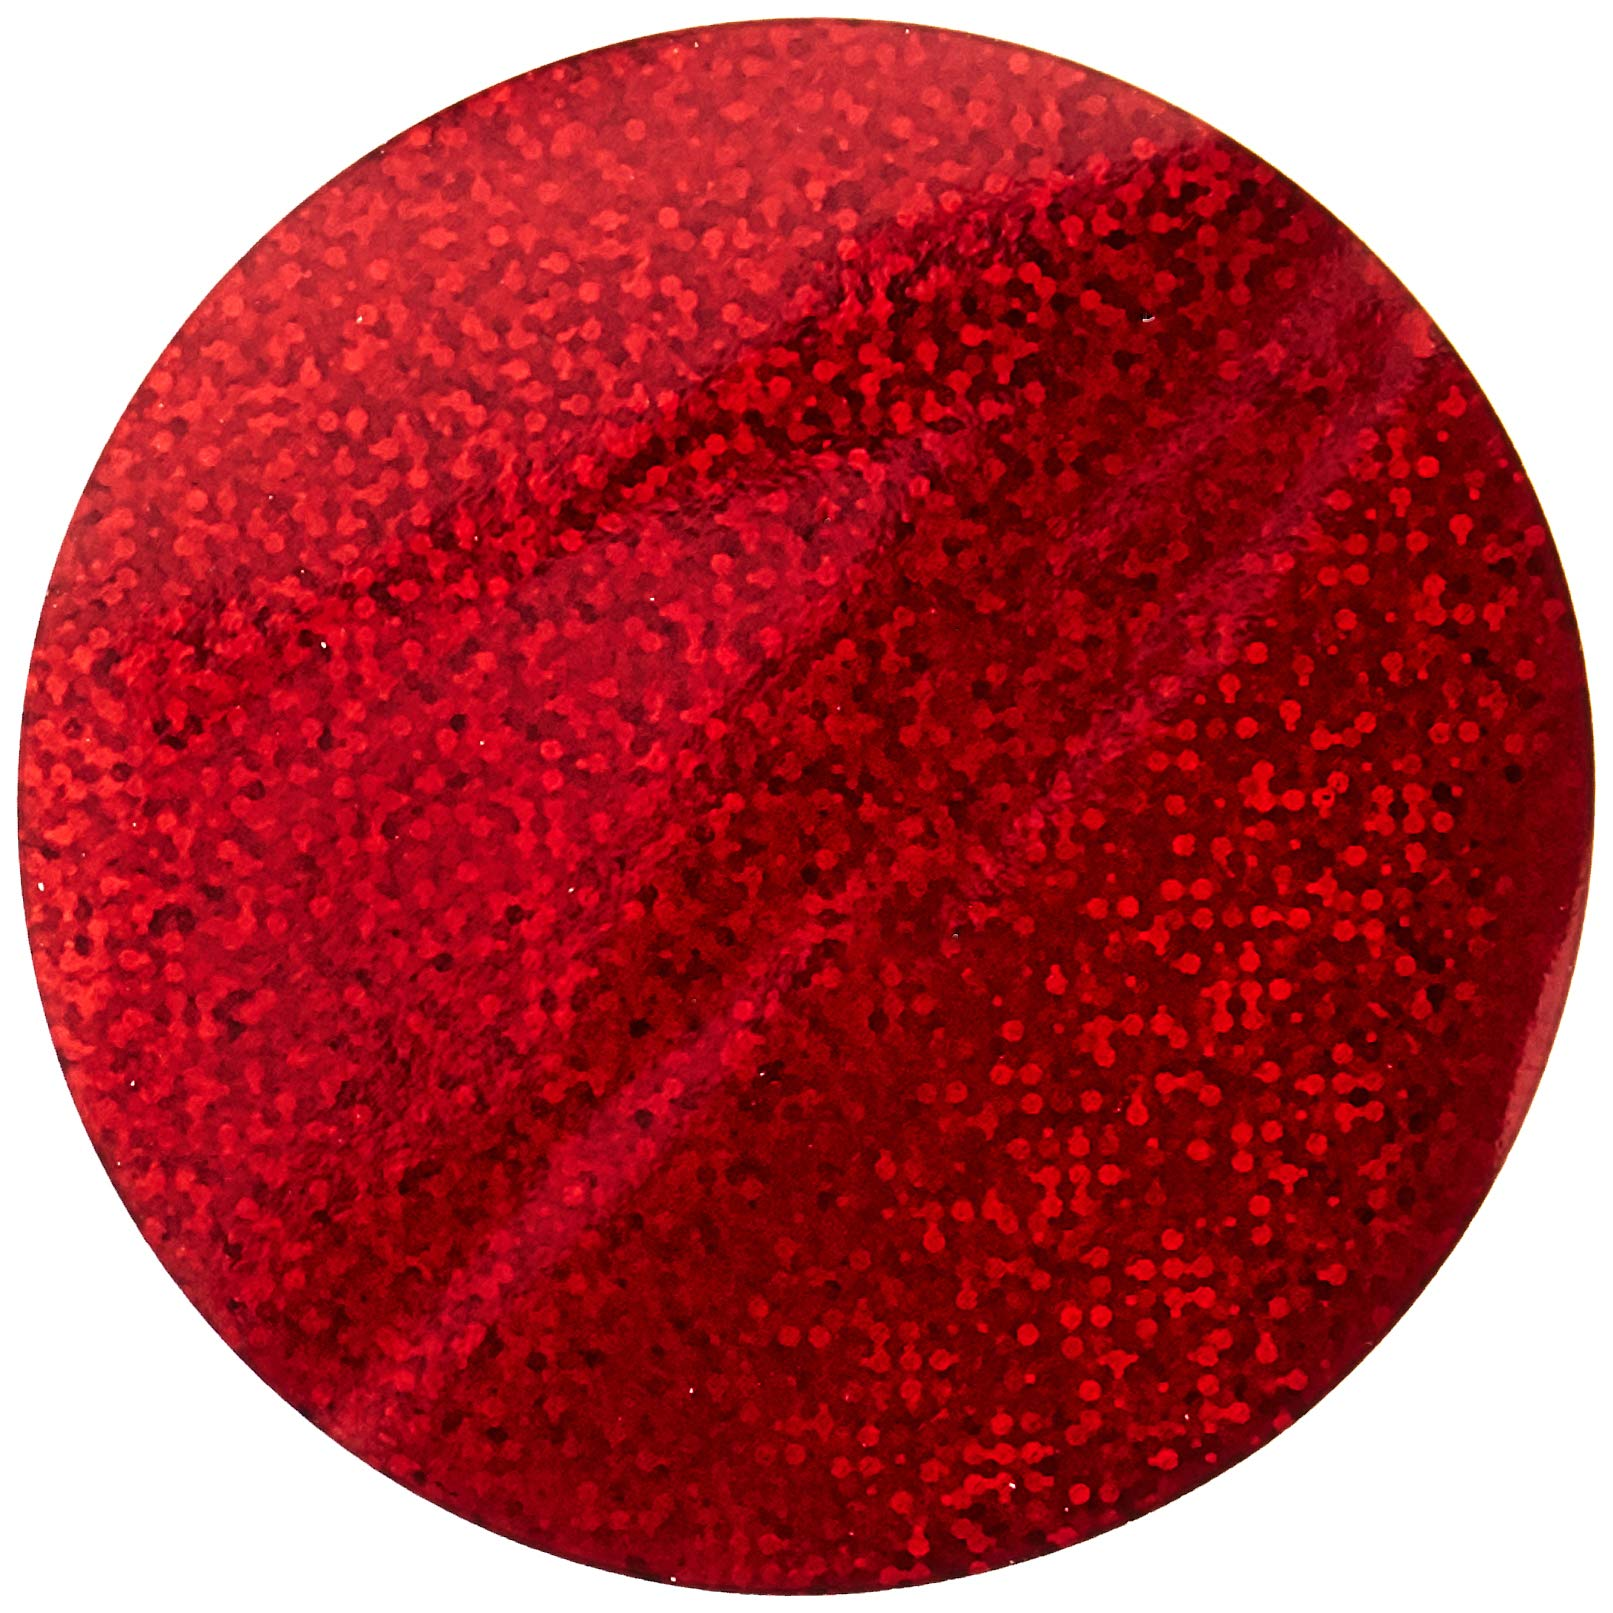 Mettoo Red Holographic Sparkle Body Foil Festival Pro, 1000 Count by Mettoo (Image #2)